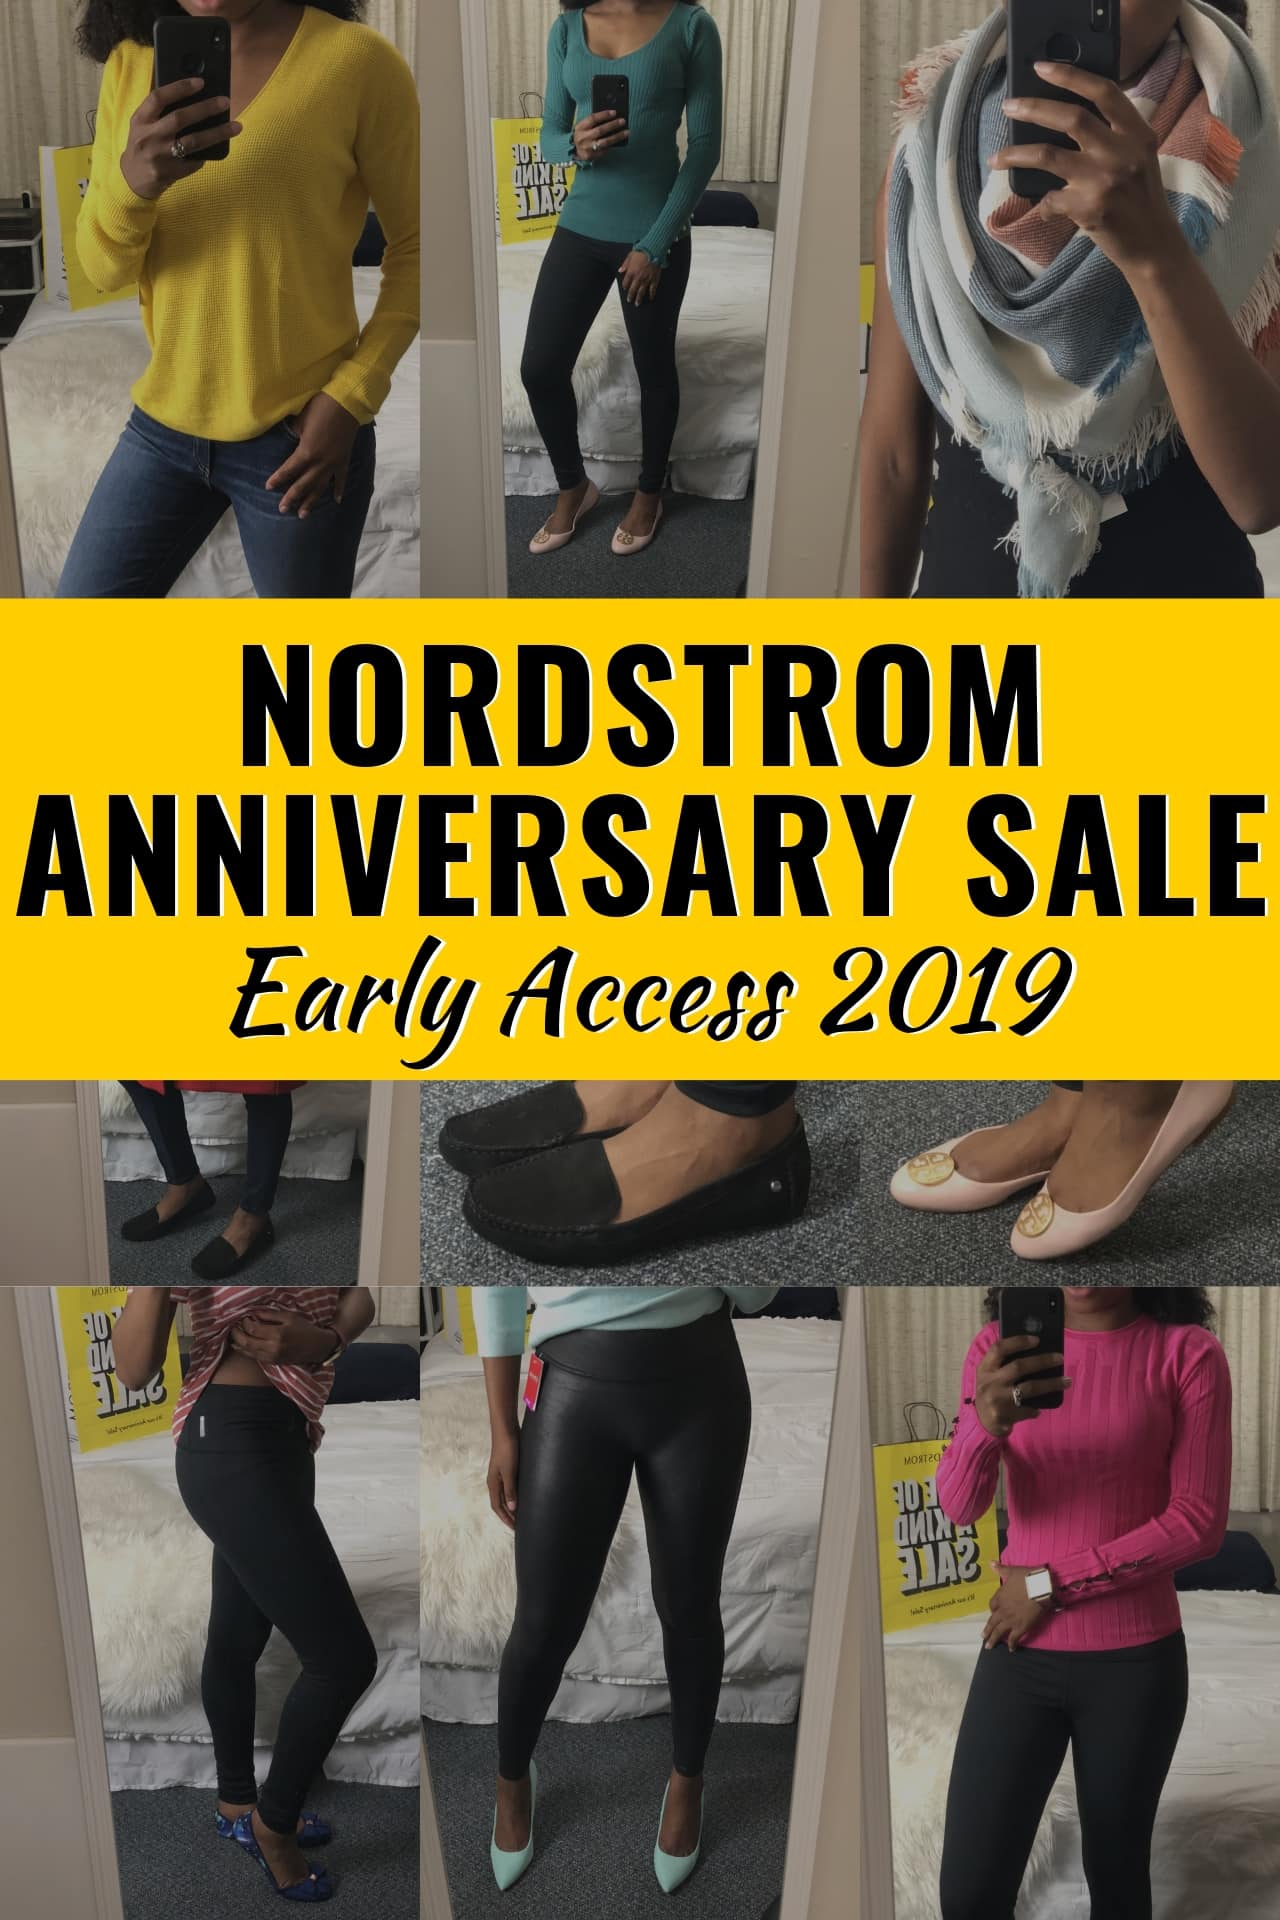 Early Access is live! These are the absolute BESTSELLERS from the Nordstrom Anniversary Sale 2019 Early Access likely to sell out fast. Plus details on to shop the NSALE now WITHOUT a Nordstrom card!